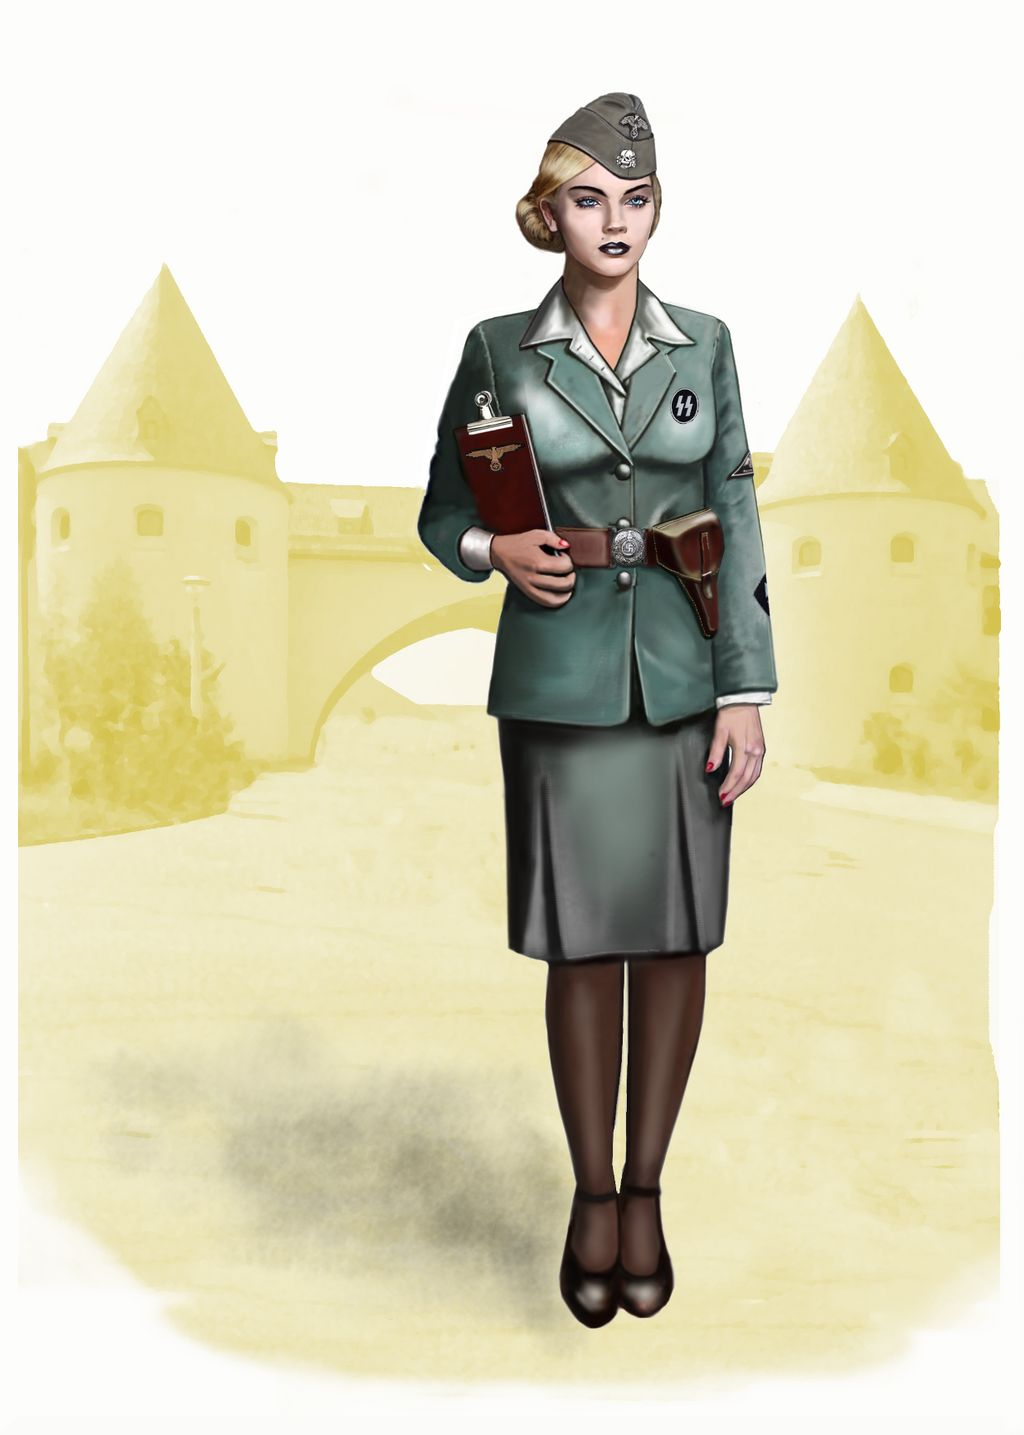 ww2_german_ss_helferinnen_by_andreasilva60_davuqq3-fullview